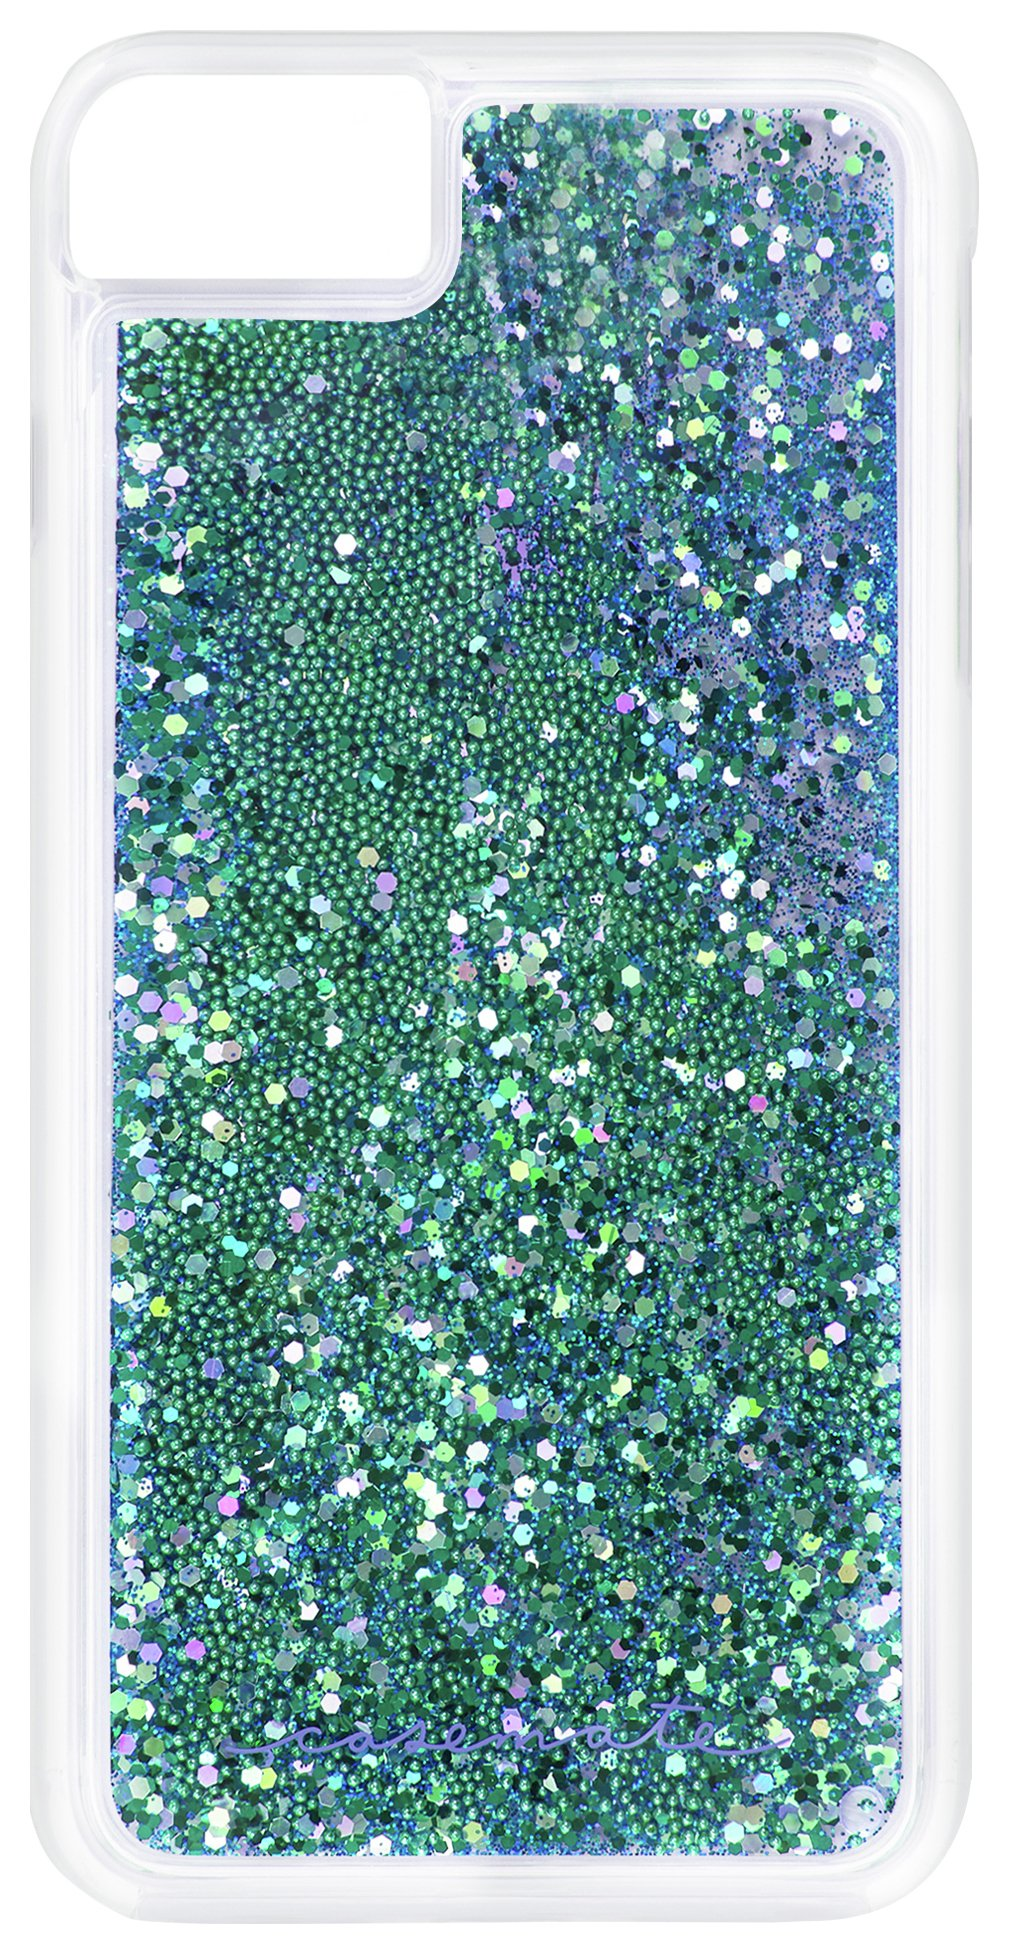 Image of Case-Mate Waterfall iPhone 6/ 6s/ 7 / 8 Case - Teal